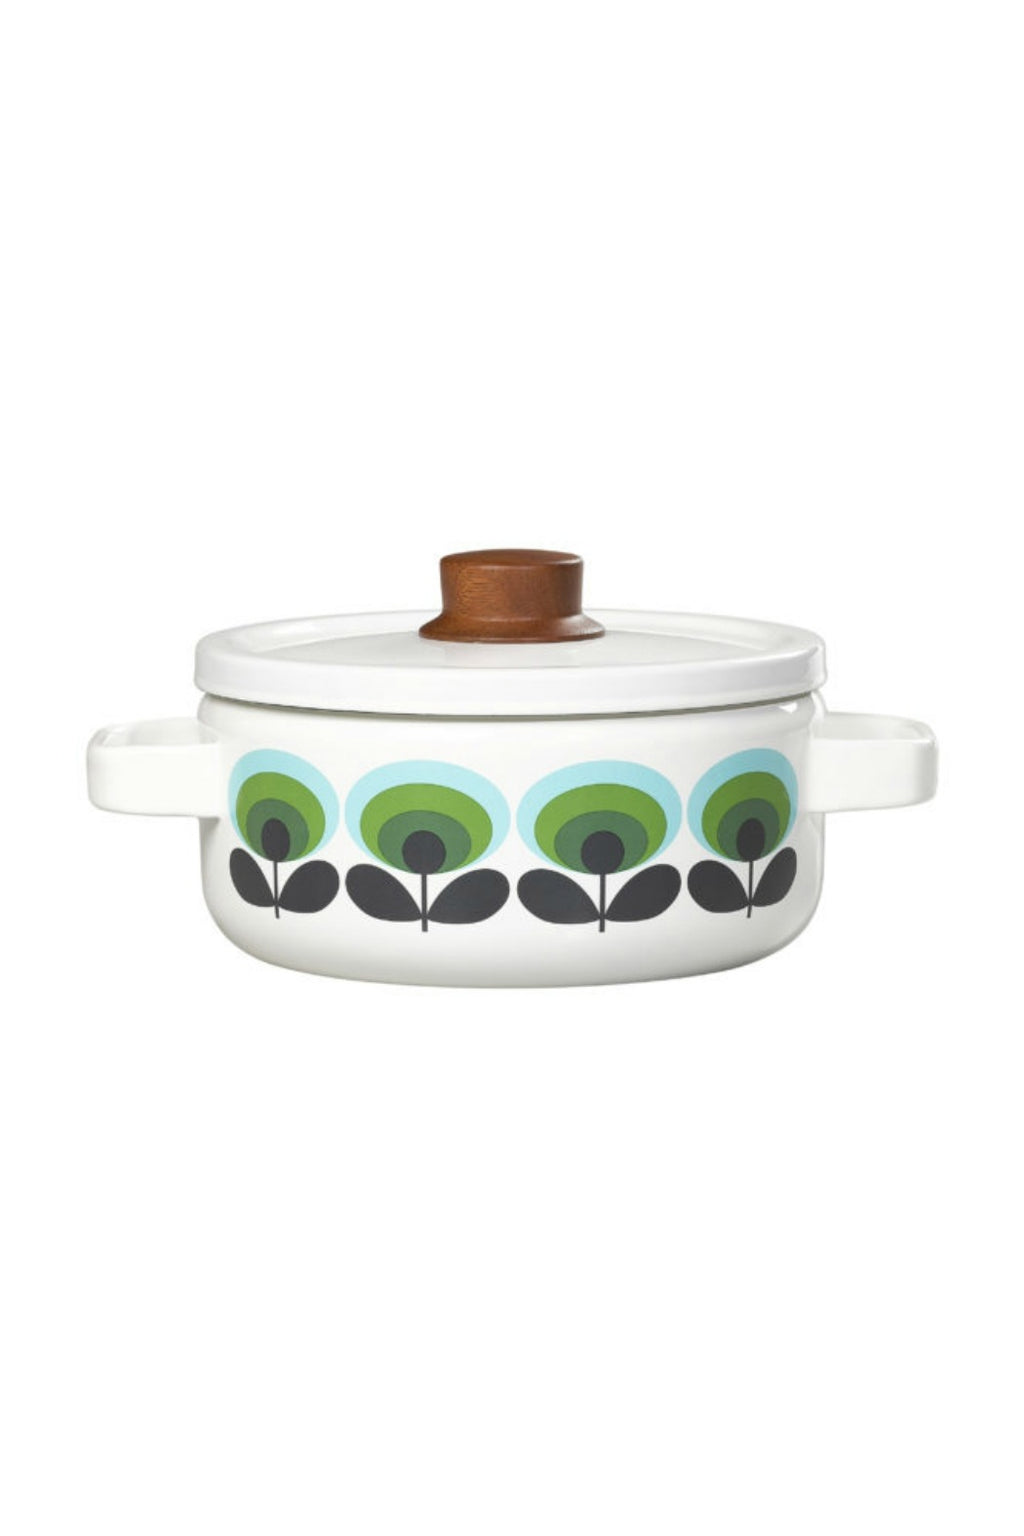 Orla Kiely 70's Oval Flower Enamel Medium Casserole Pot